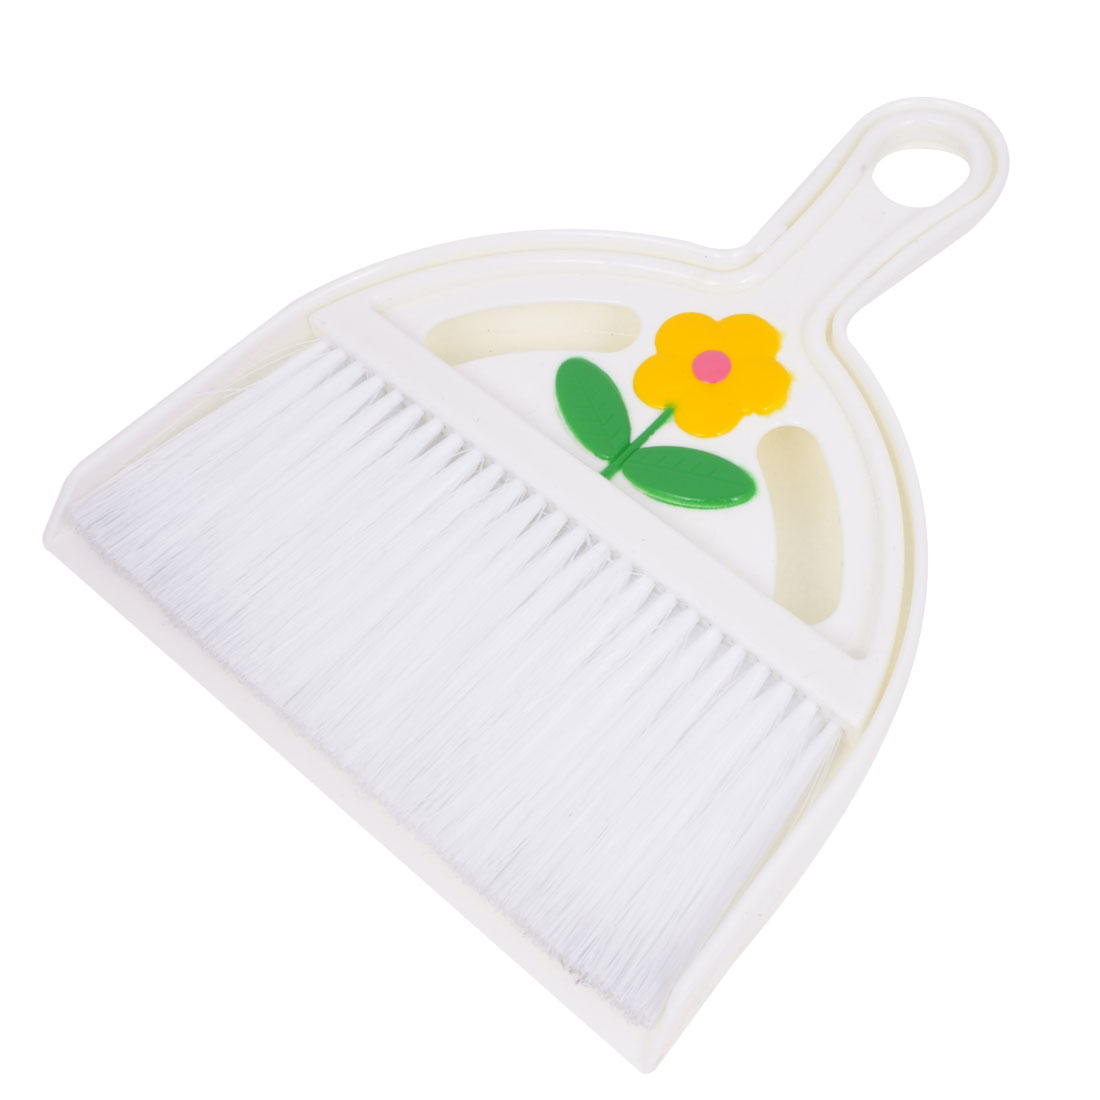 Home Desk Cleaning Tool White Plastic Flower Pattern Broom Dustpan Set 2 in 1